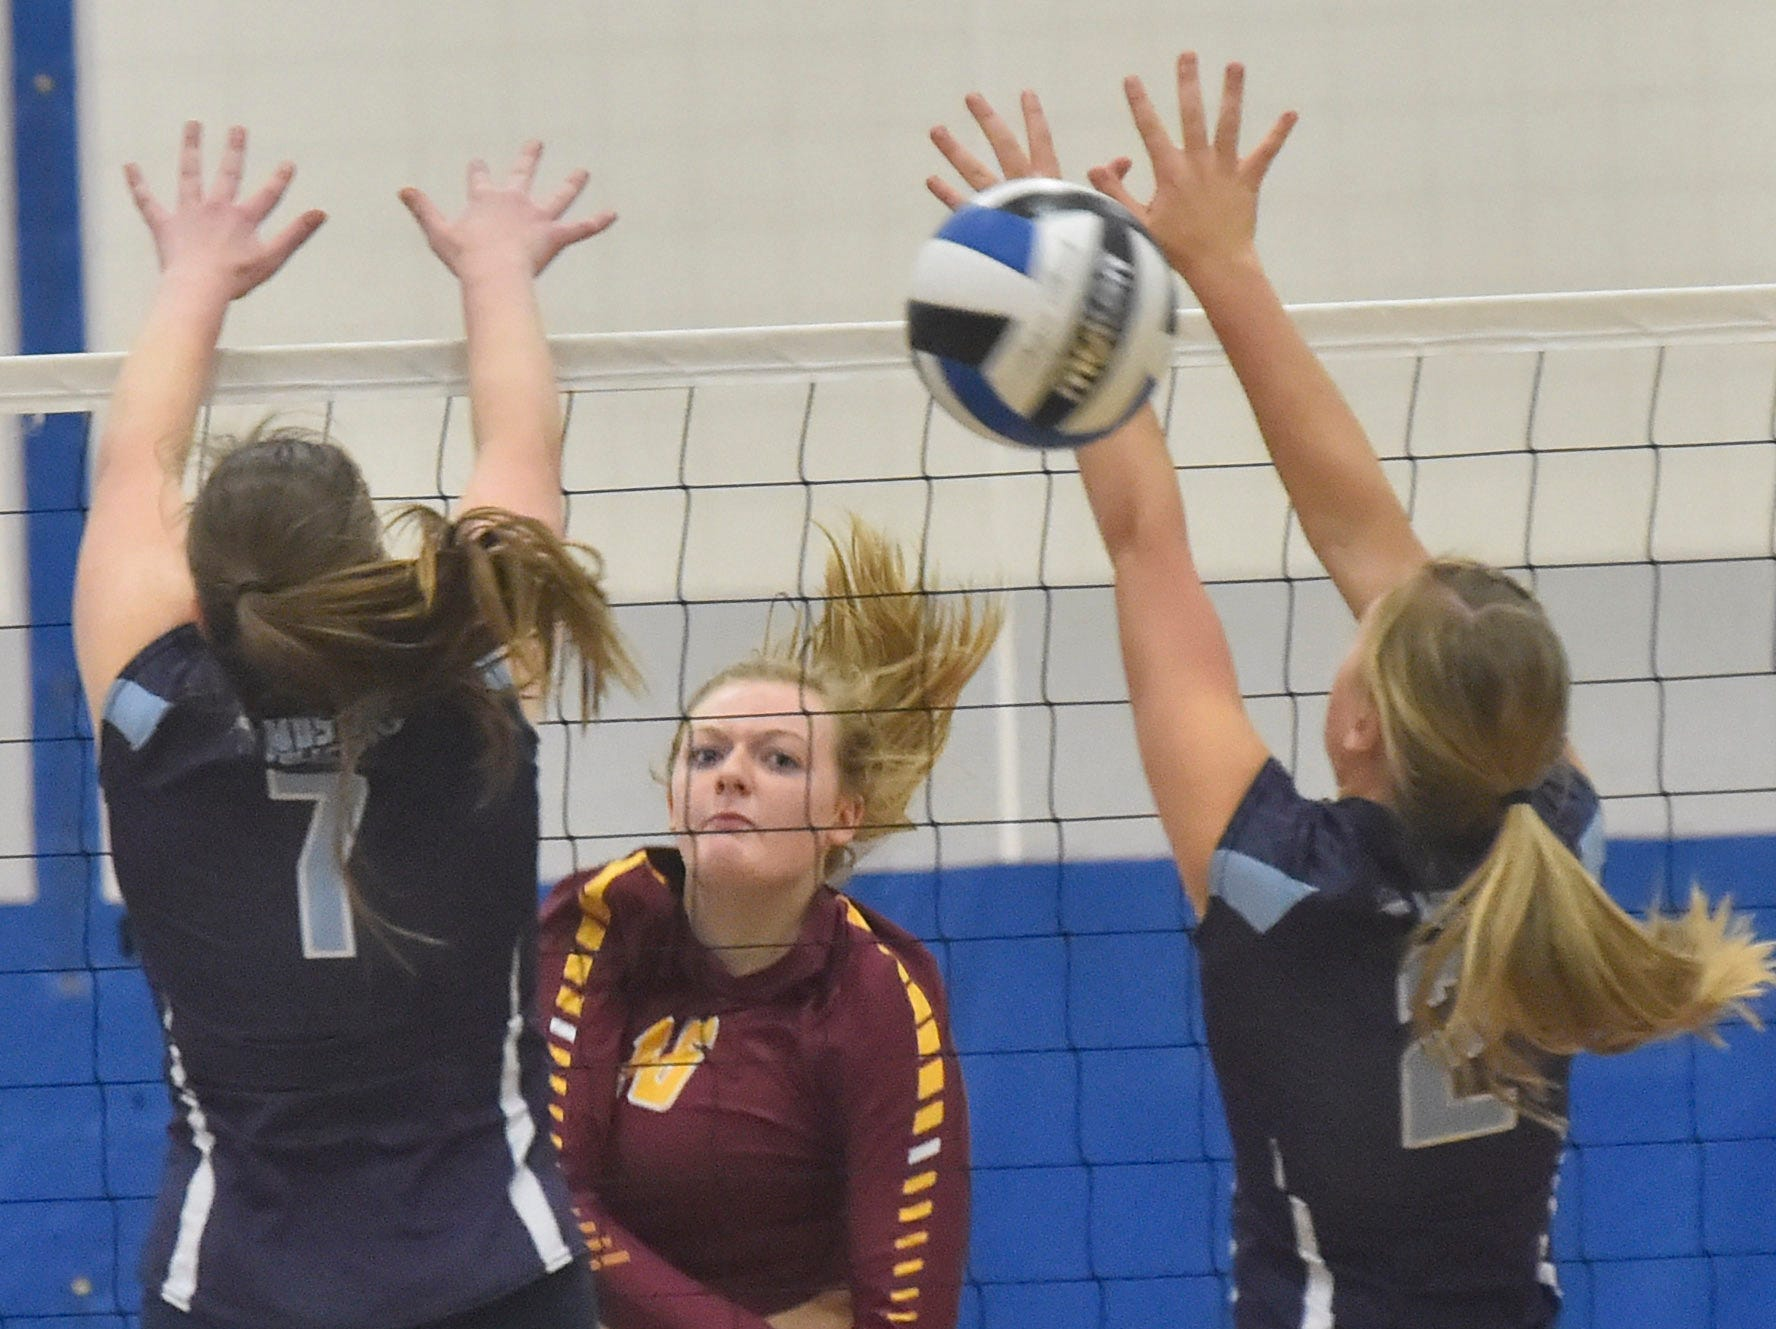 Peyton VandenBush of Luxemburg-Casco hits the ball pass Little Chute defenders Luxemburg-Casco at the WIAA Division 2 sectional final against Little Chute on Oct. 27, 2018, in Wrightstown. Tina M. Gohr/USA TODAY NETWORK-Wisconsin